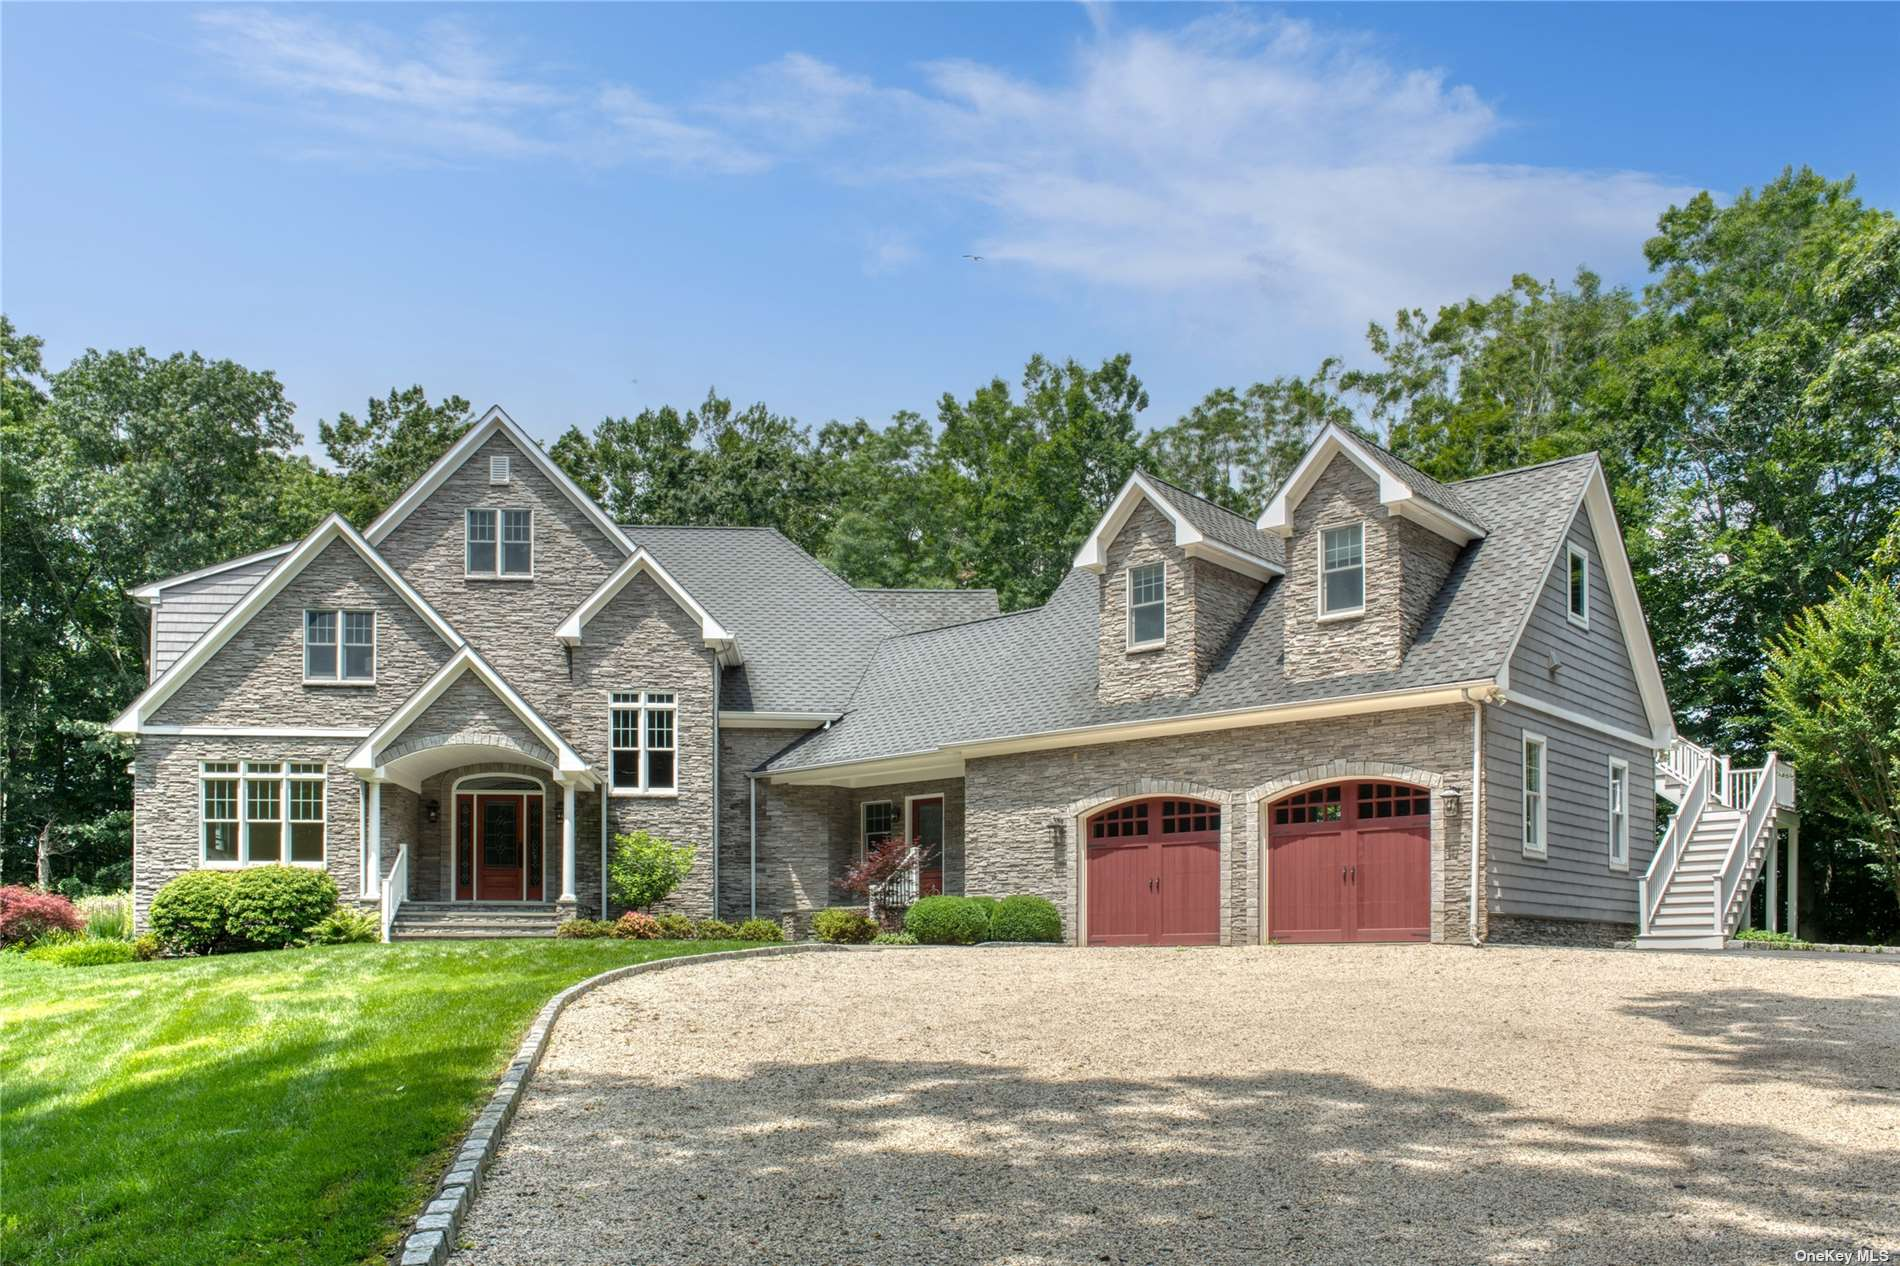 Live the North Fork dream! Beautifully appointed very private estate surrounded by woodlands and farmland. Entertain guests and family in your Great Room while a fire crackles in the beautiful stone fireplace which adjoins a huge Gourmet Kitchen with plenty of pantry space, Granite counters and a Large Island with additional sink, refrigerated wine storage, and entertaining space. There are 3 large bedrooms upstairs which adjoin a common sitting or play area for guests and family. Huge First Floor Master Suite includes a private Home Office. Walk out the french doors onto a patio where you can have coffee in the morning in complete privacy as you overlook gorgeous woodland and farmland. The basement includes 10' ceilings  and plenty of room for a putting green, pool table, and media room and to practice your golf swing! This Bucolic Beauty will not last!